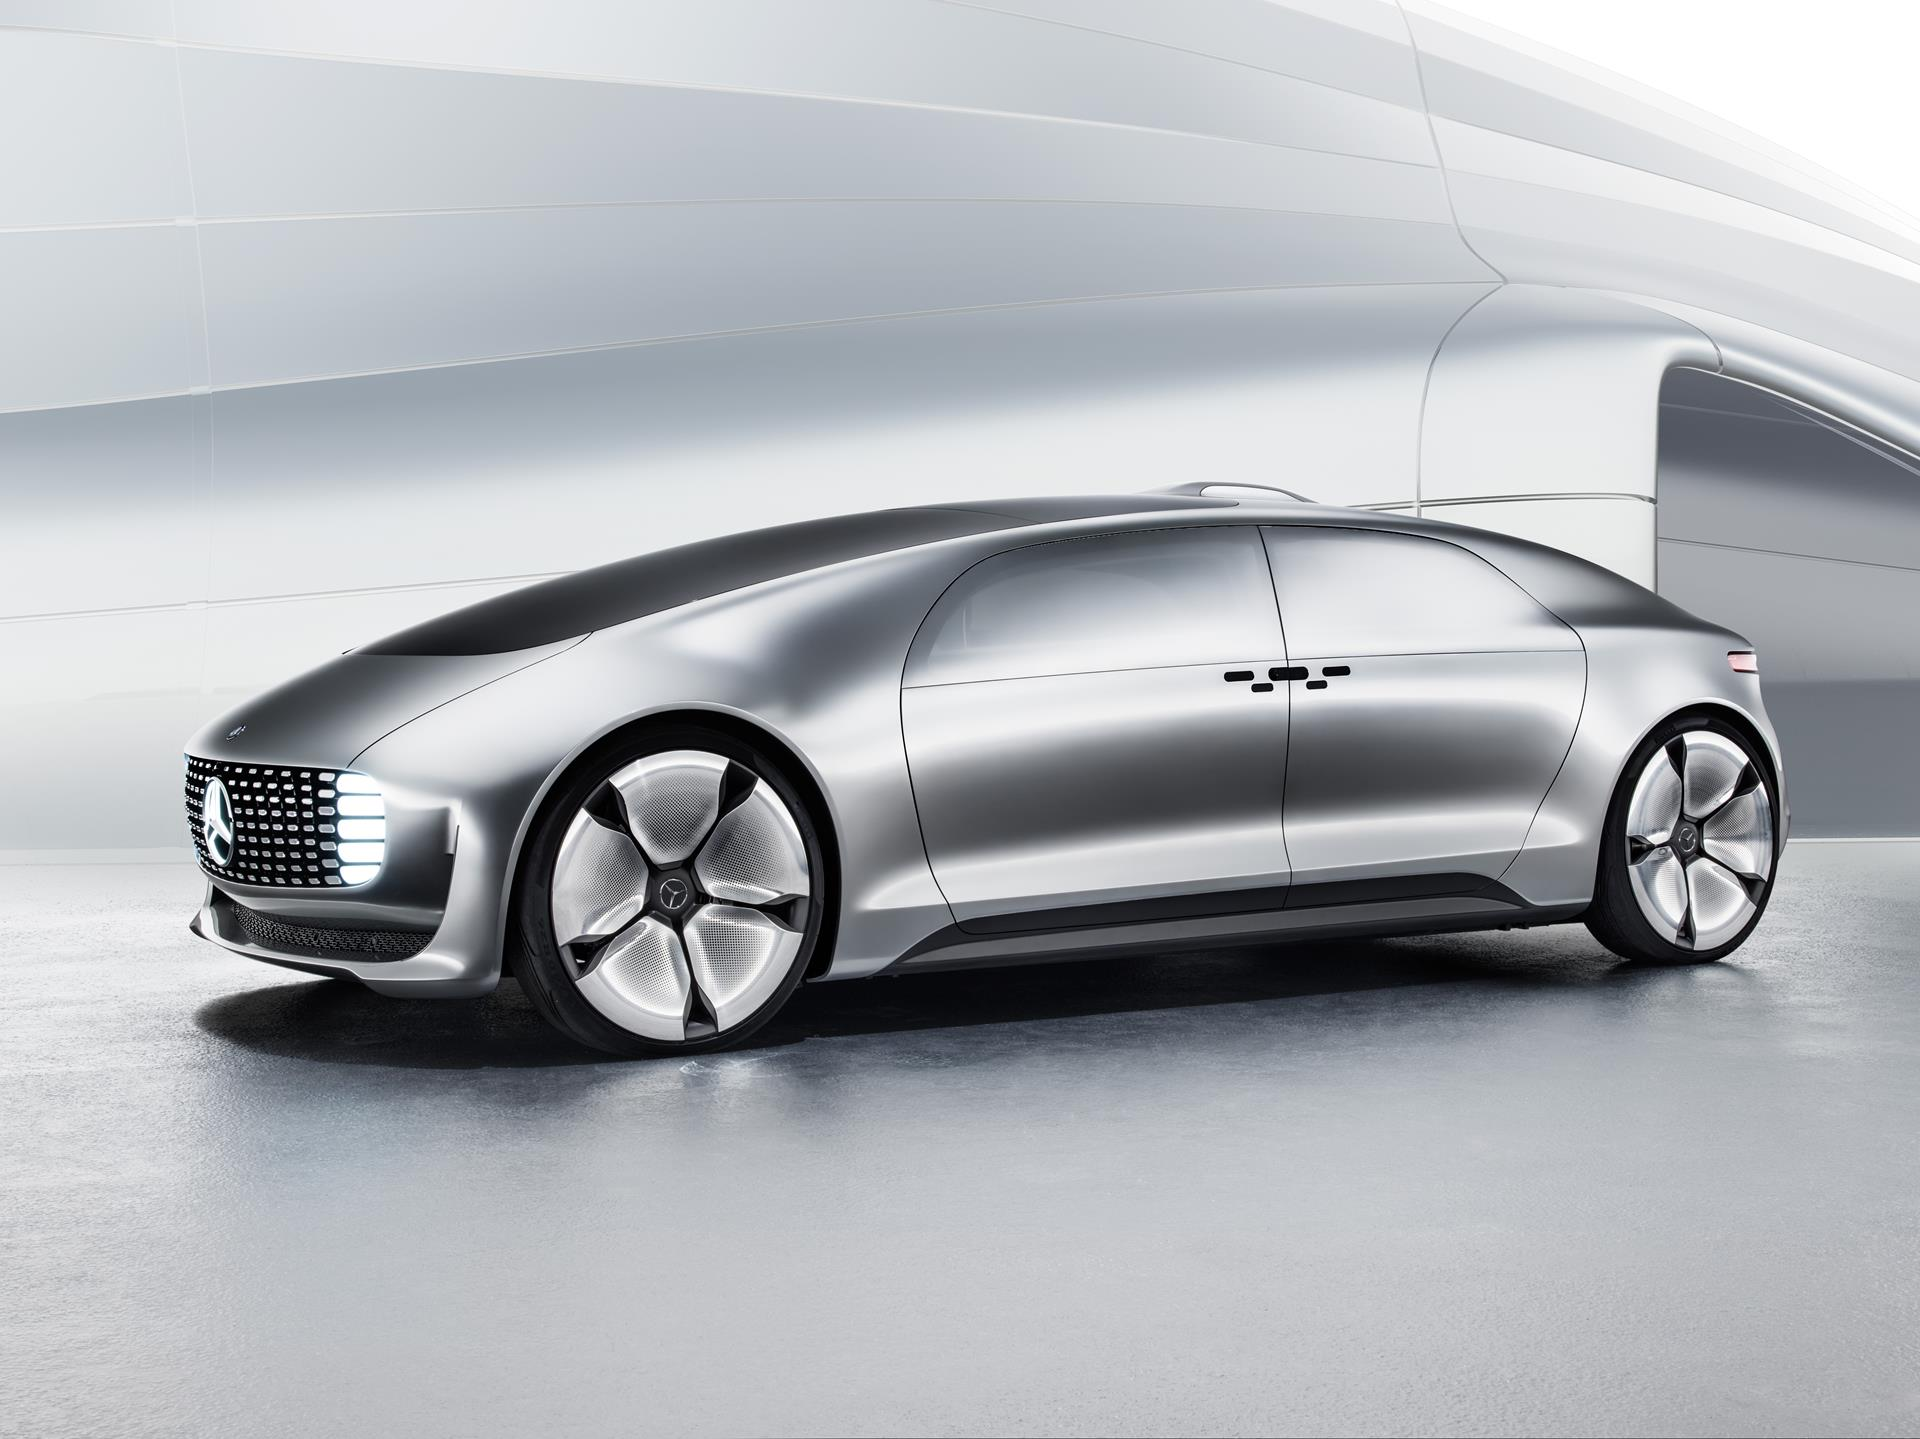 2015 mercedes benz f 015 luxury in motion concept pictures for Mercedes benz f 015